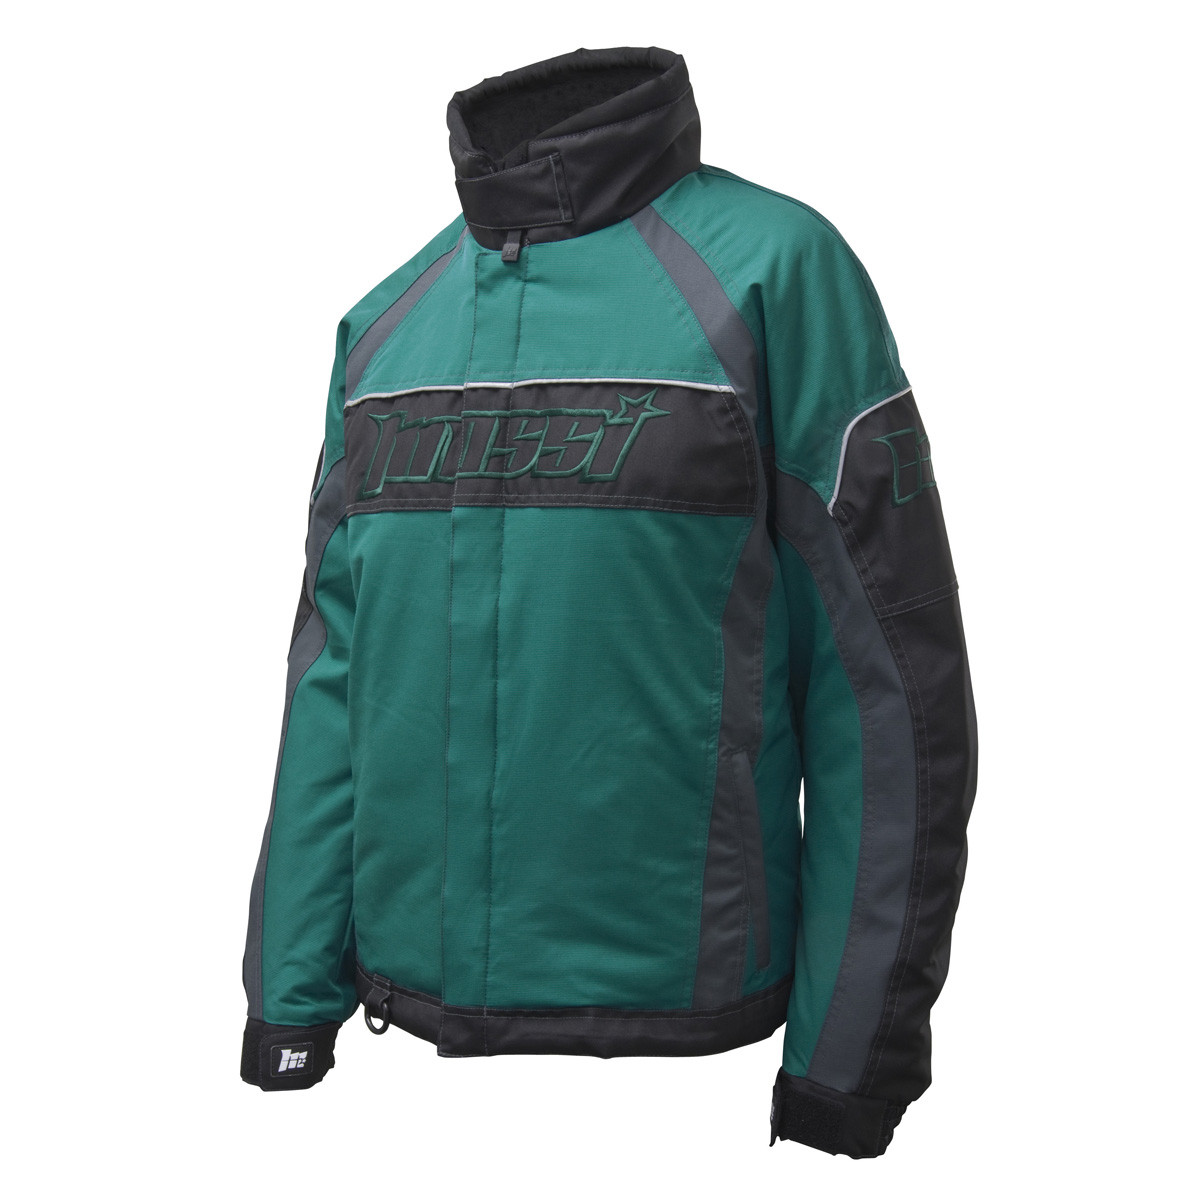 Snow Mobile Clothing : Mossi ladies jacket snowmobile apparel forward